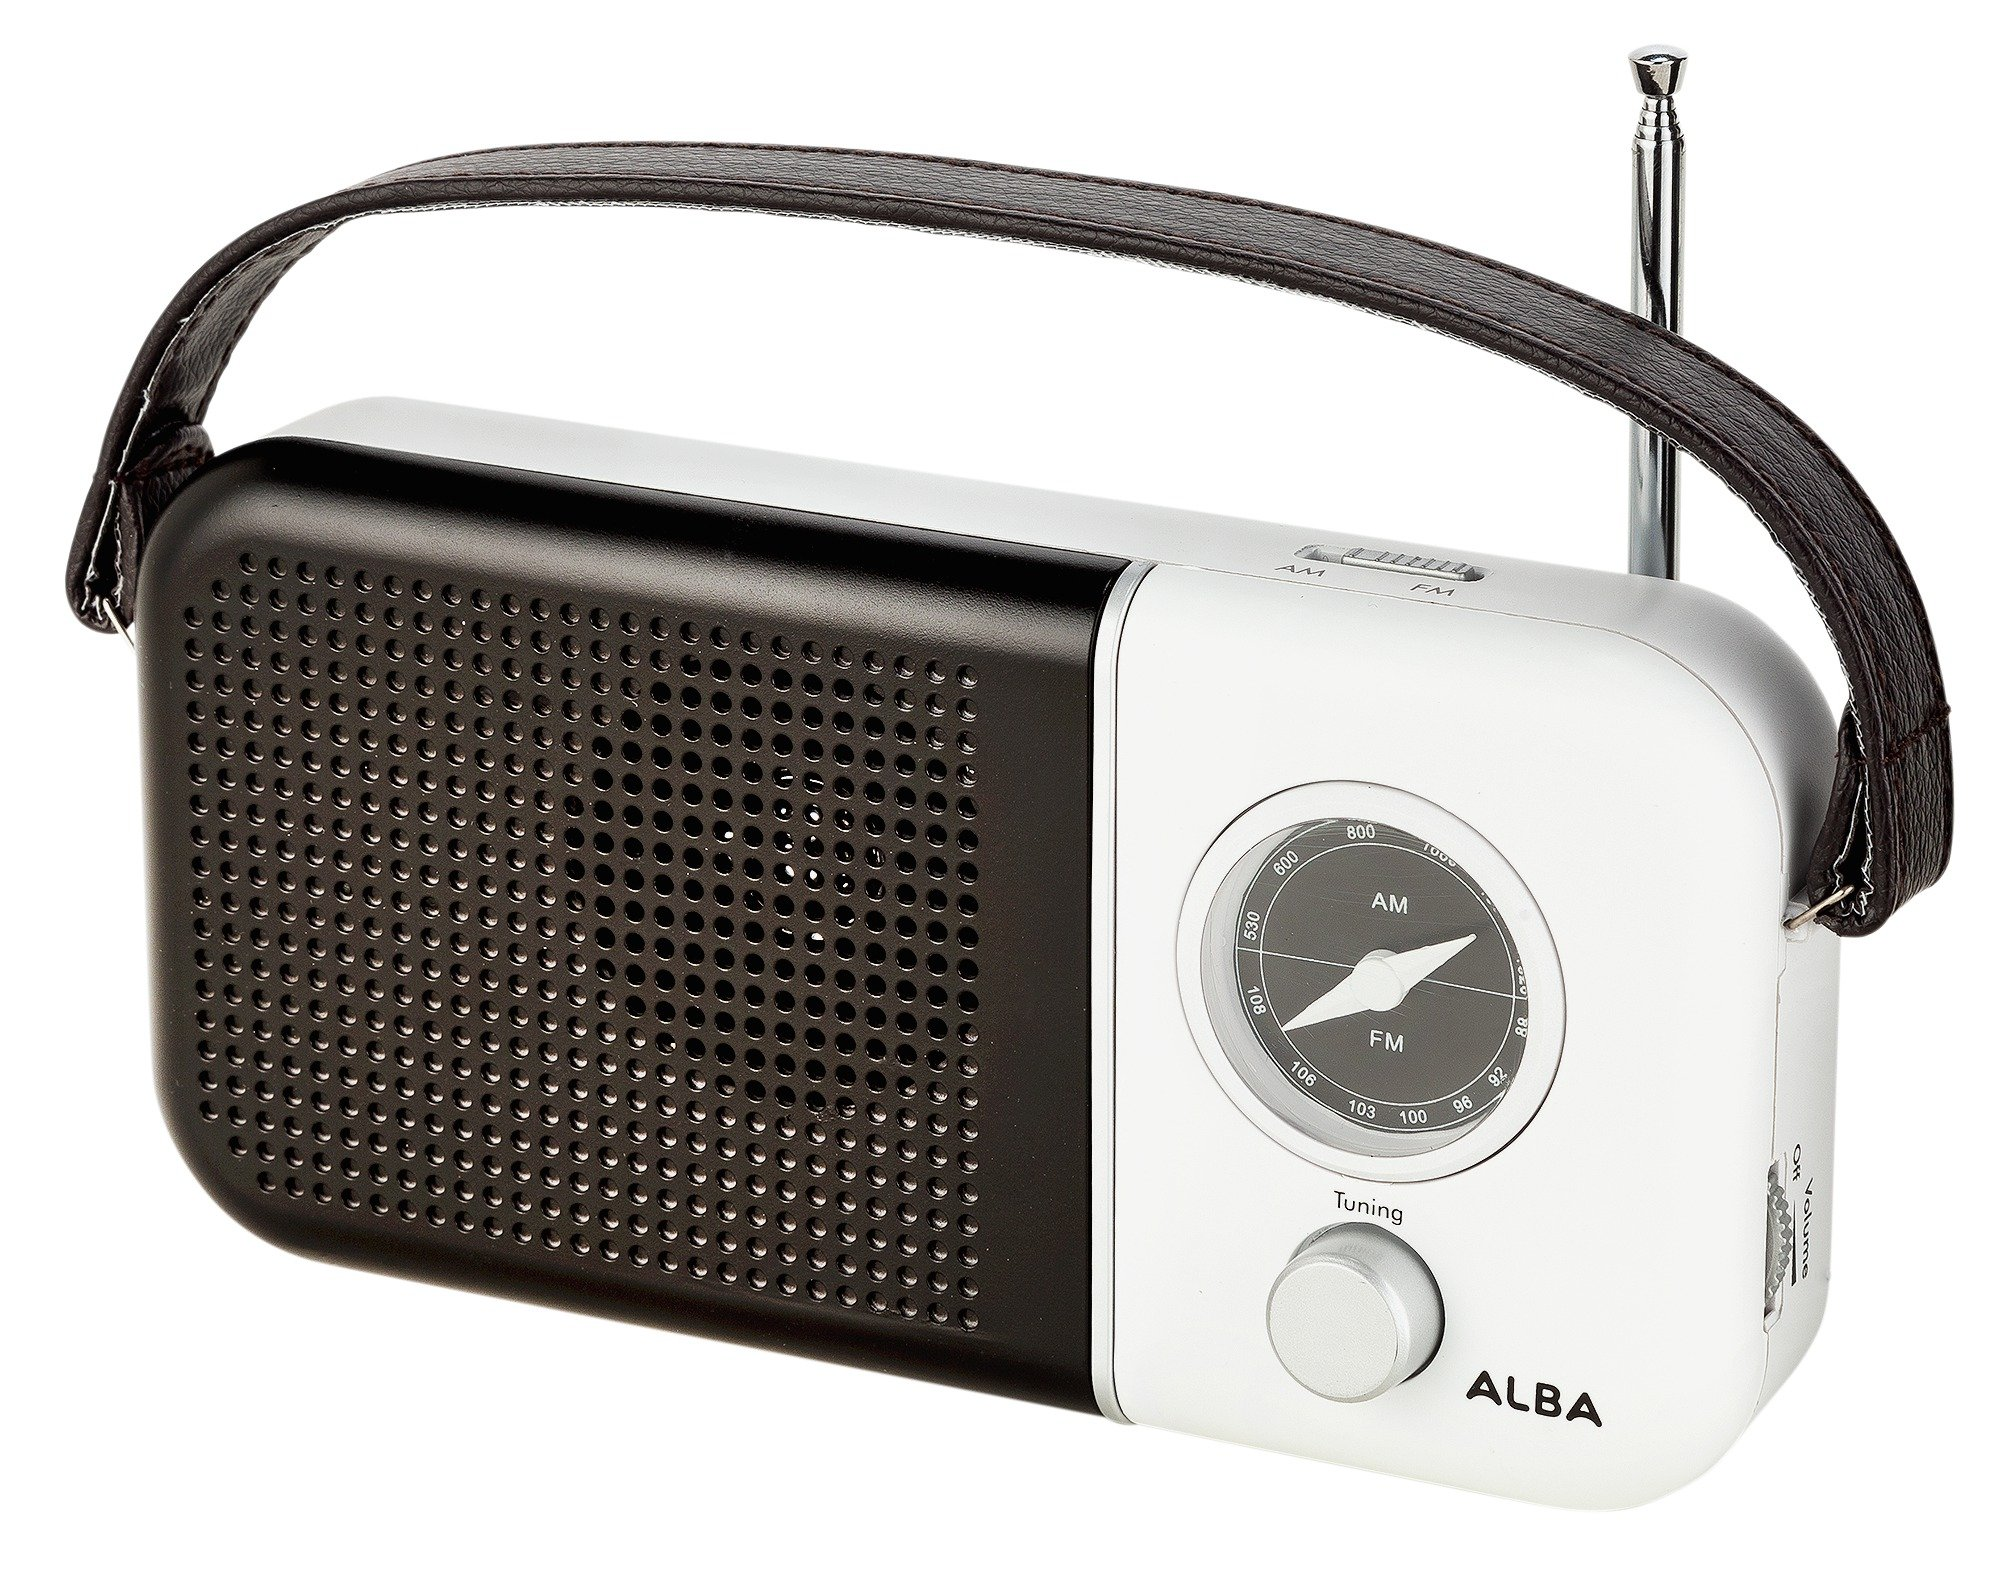 a review of the fm radio What's the best radio for am reception do expensive multiband radios provide better am reception than a purely am or am/fm radio wondering how the most popular radios compare.